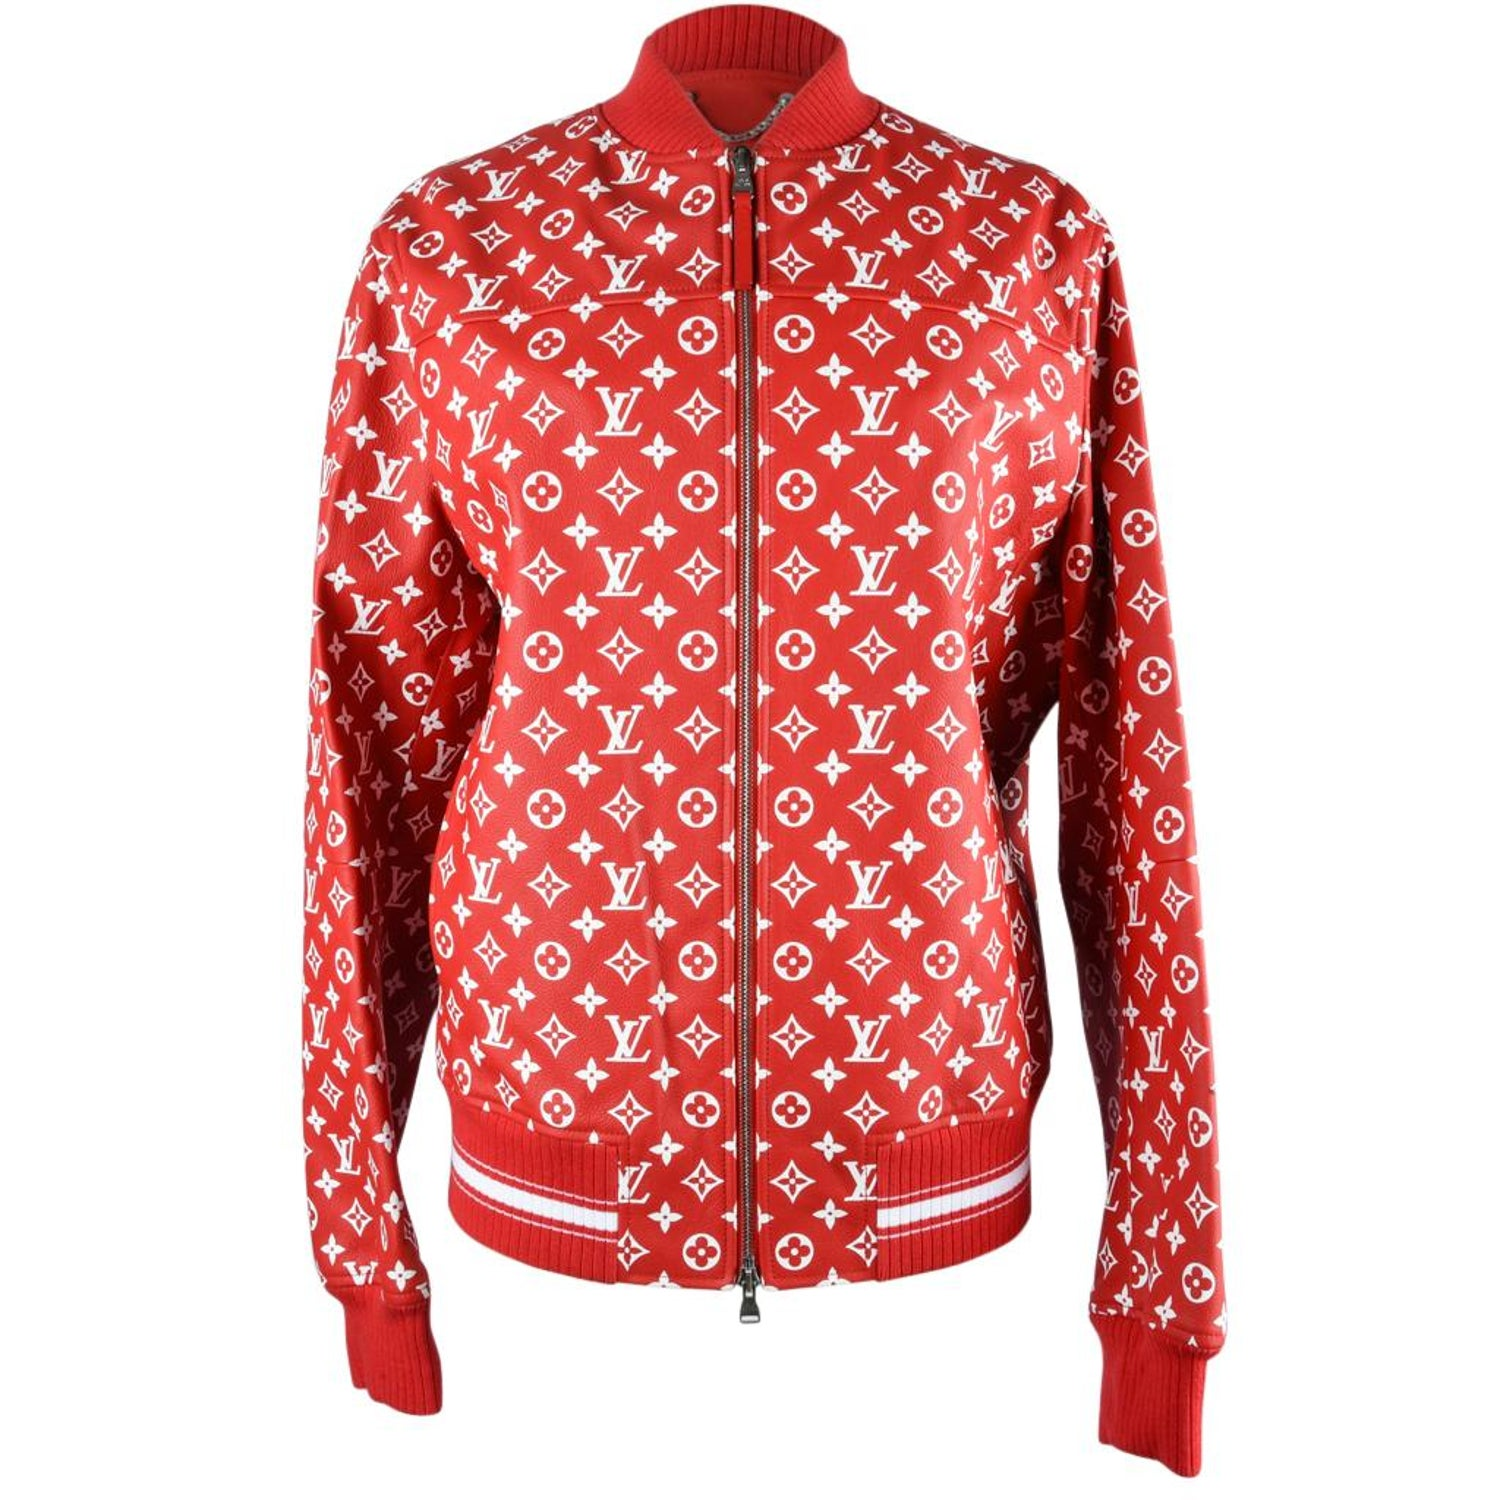 7076a62a8959 Louis Vuitton Supreme X Leather Bomber Varsity Jacket Monogram Ltd Ed size  50 For Sale at 1stdibs